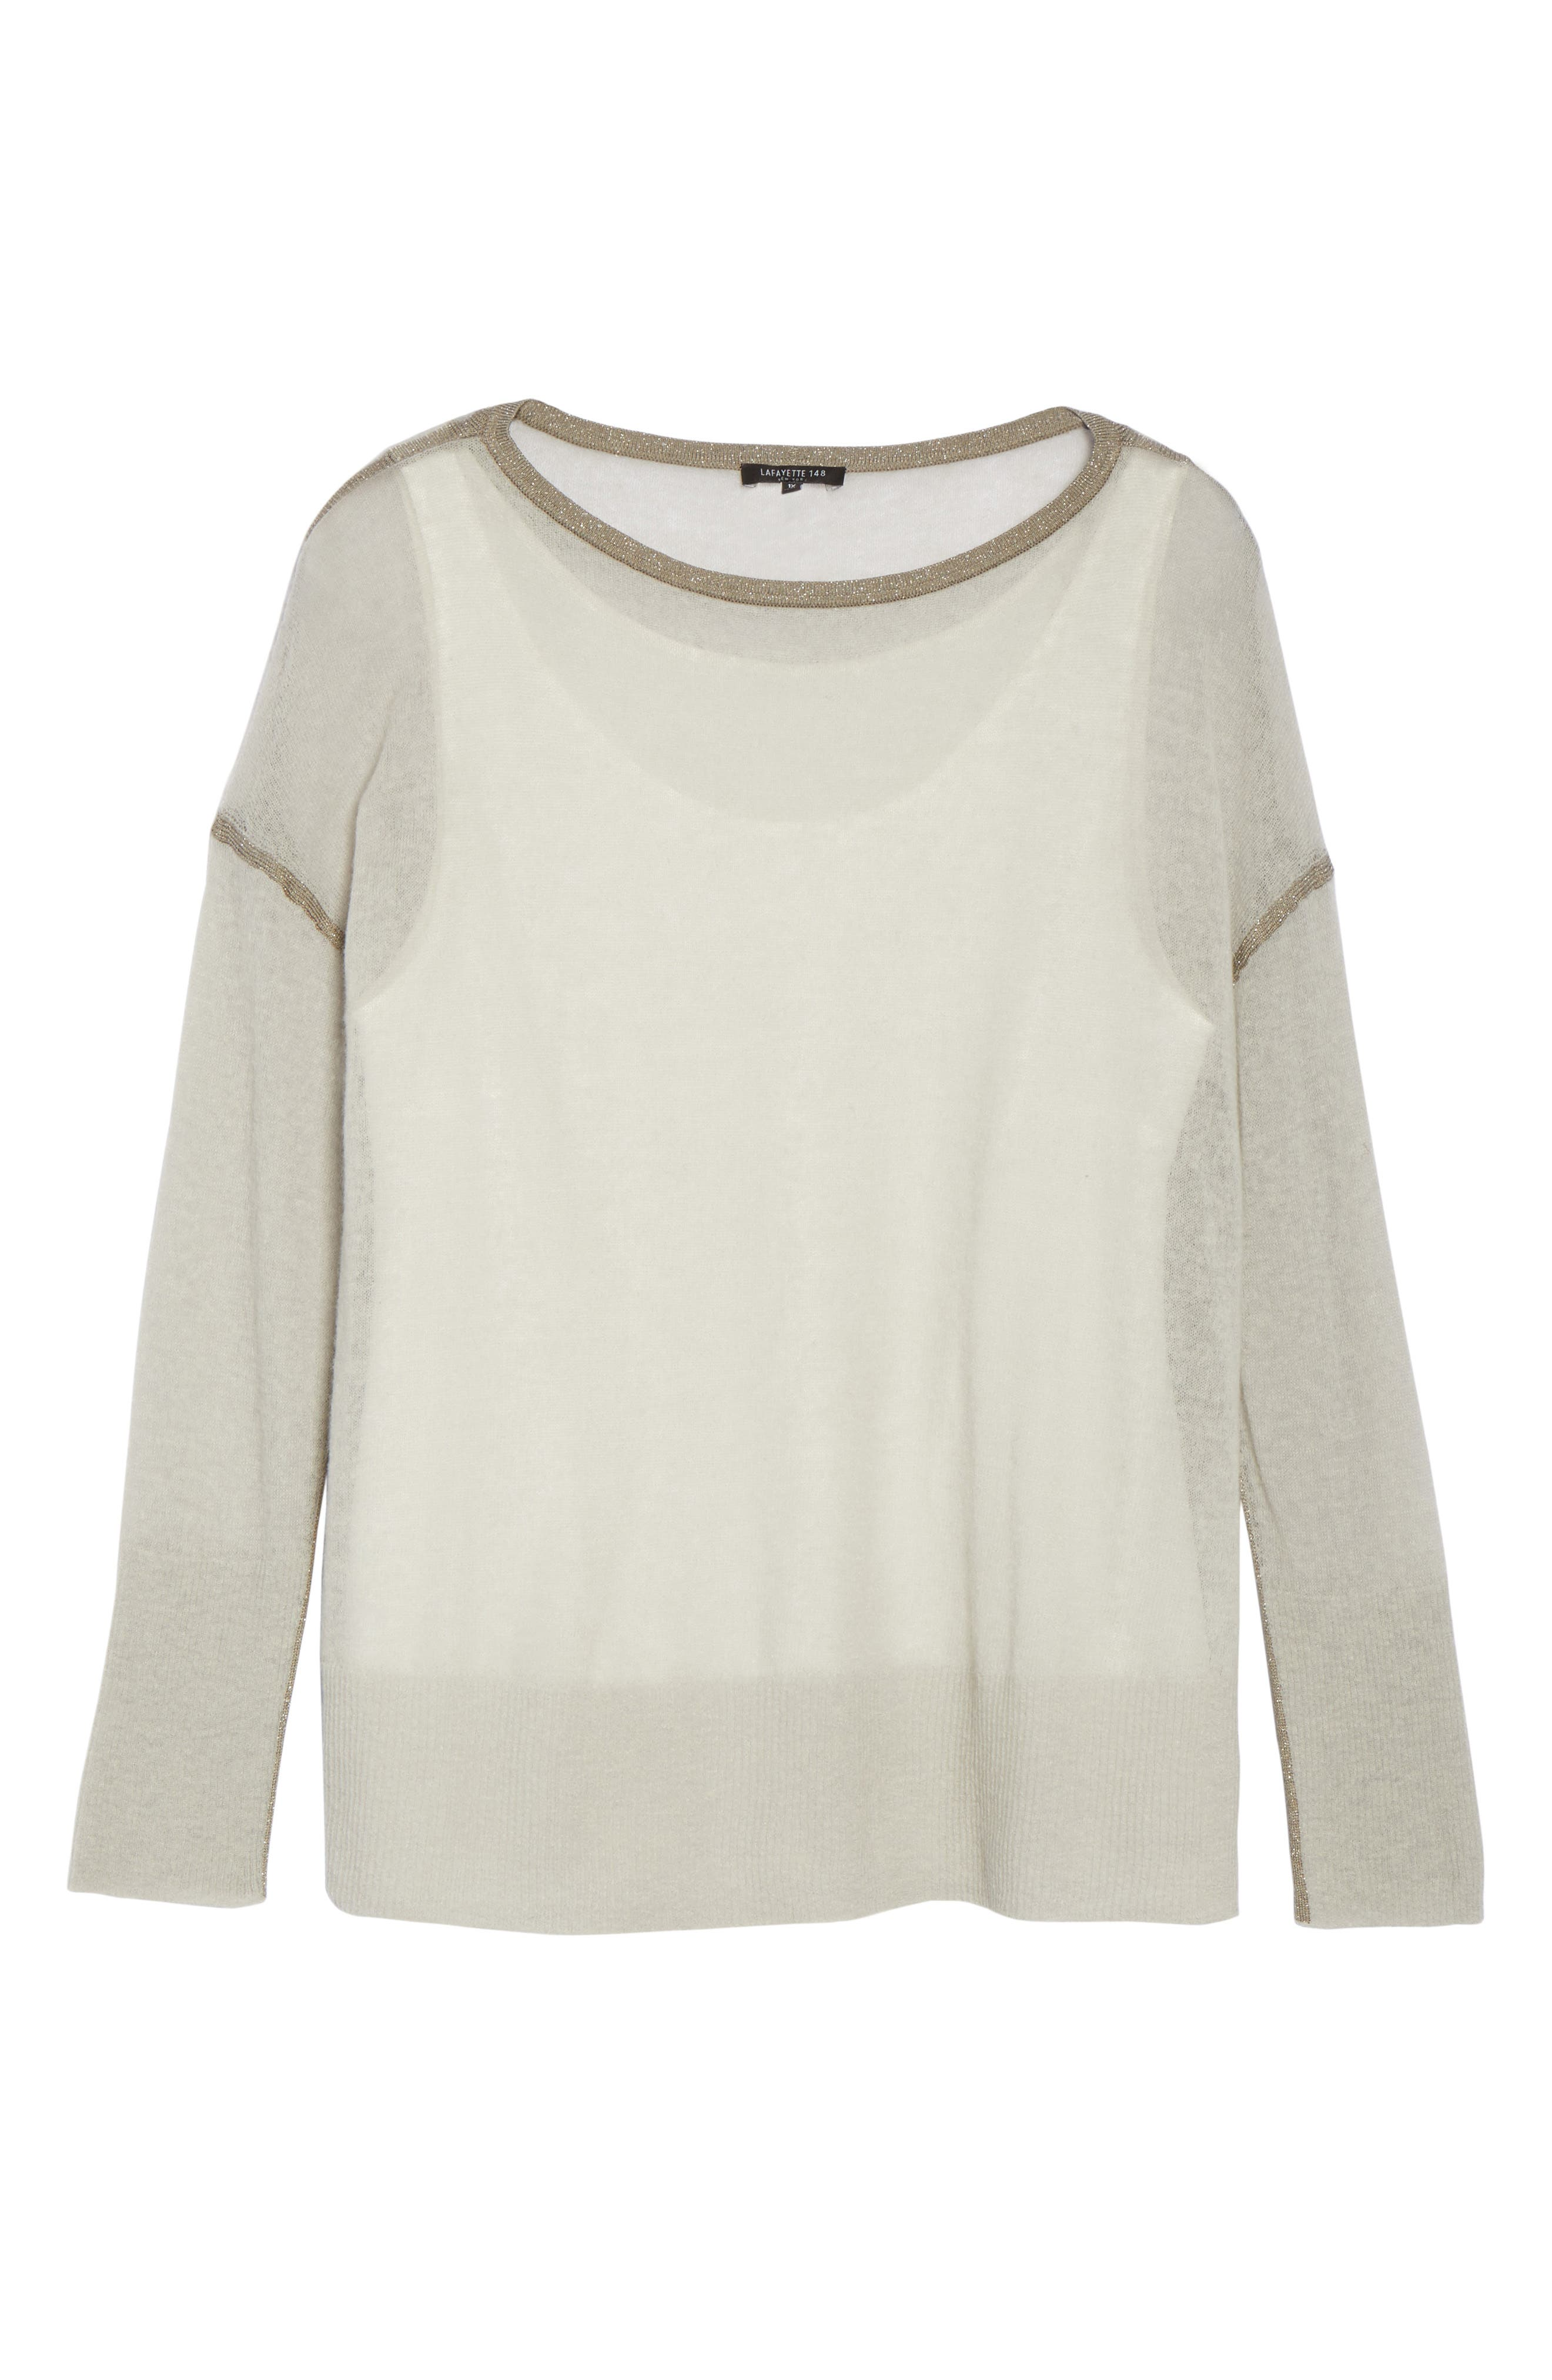 Shimmer Trim Sweater with Tank,                             Alternate thumbnail 6, color,                             062